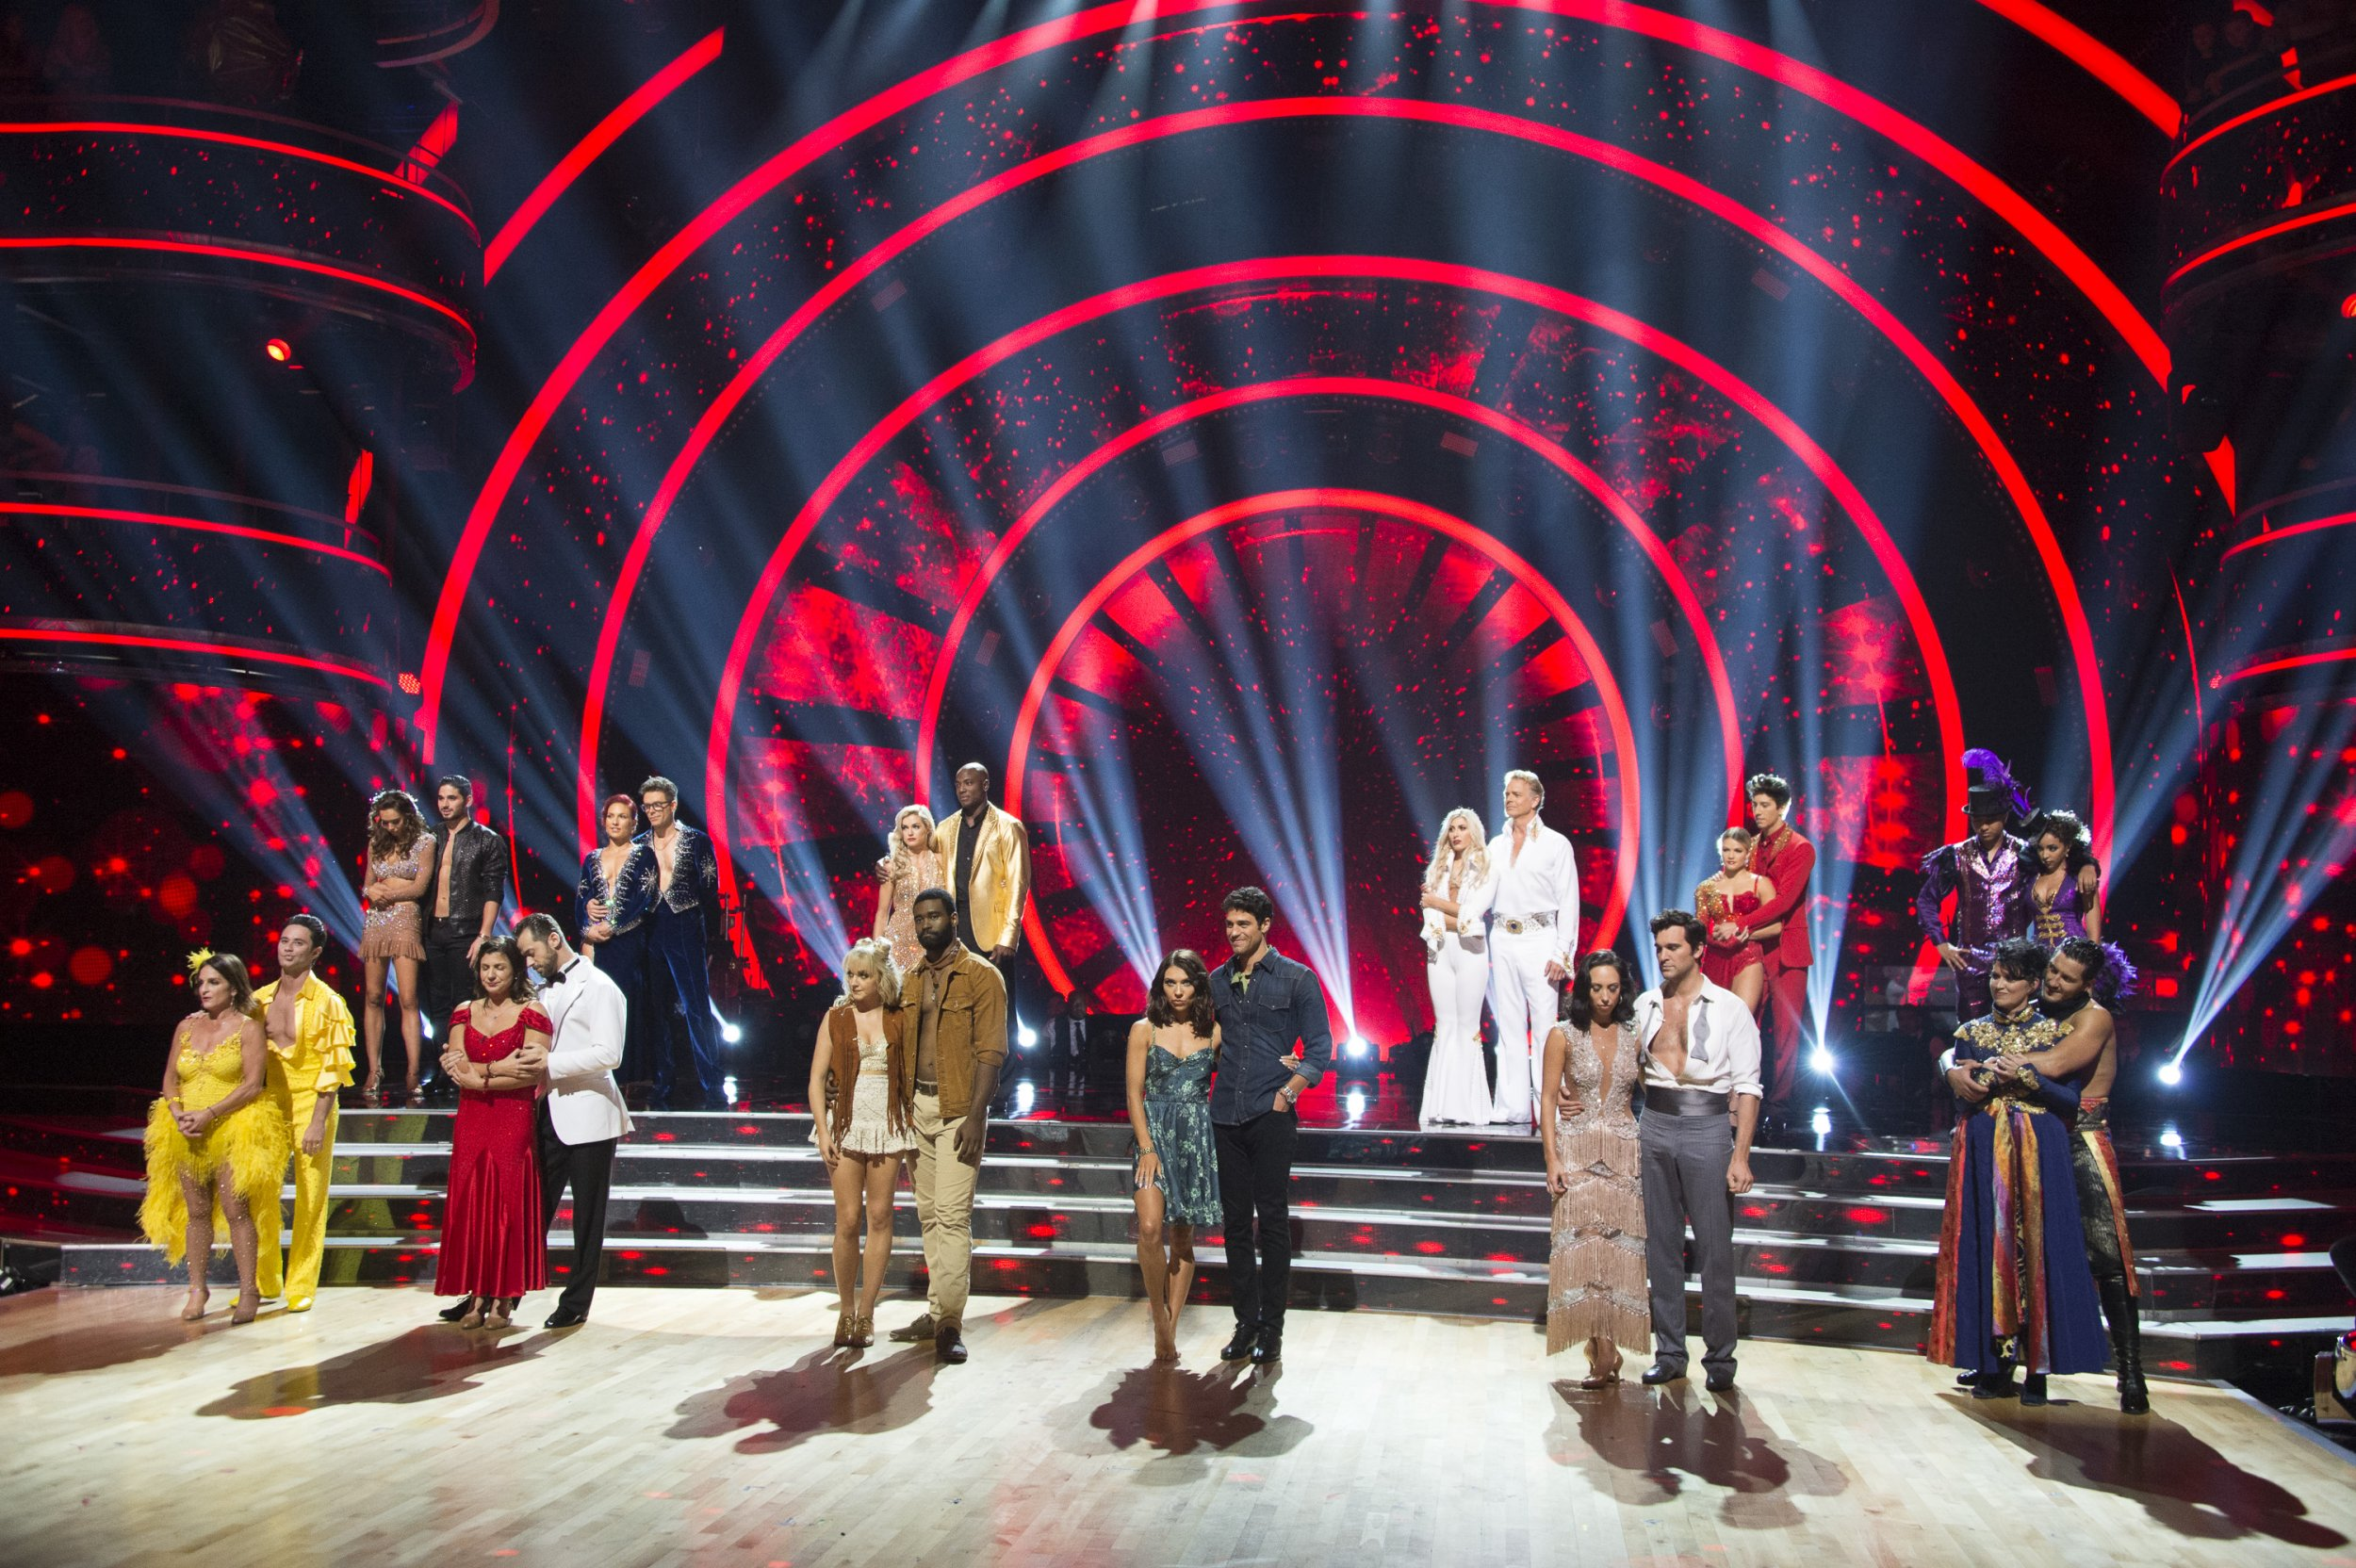 'Dancing with the Stars' Week 3 Eliminations